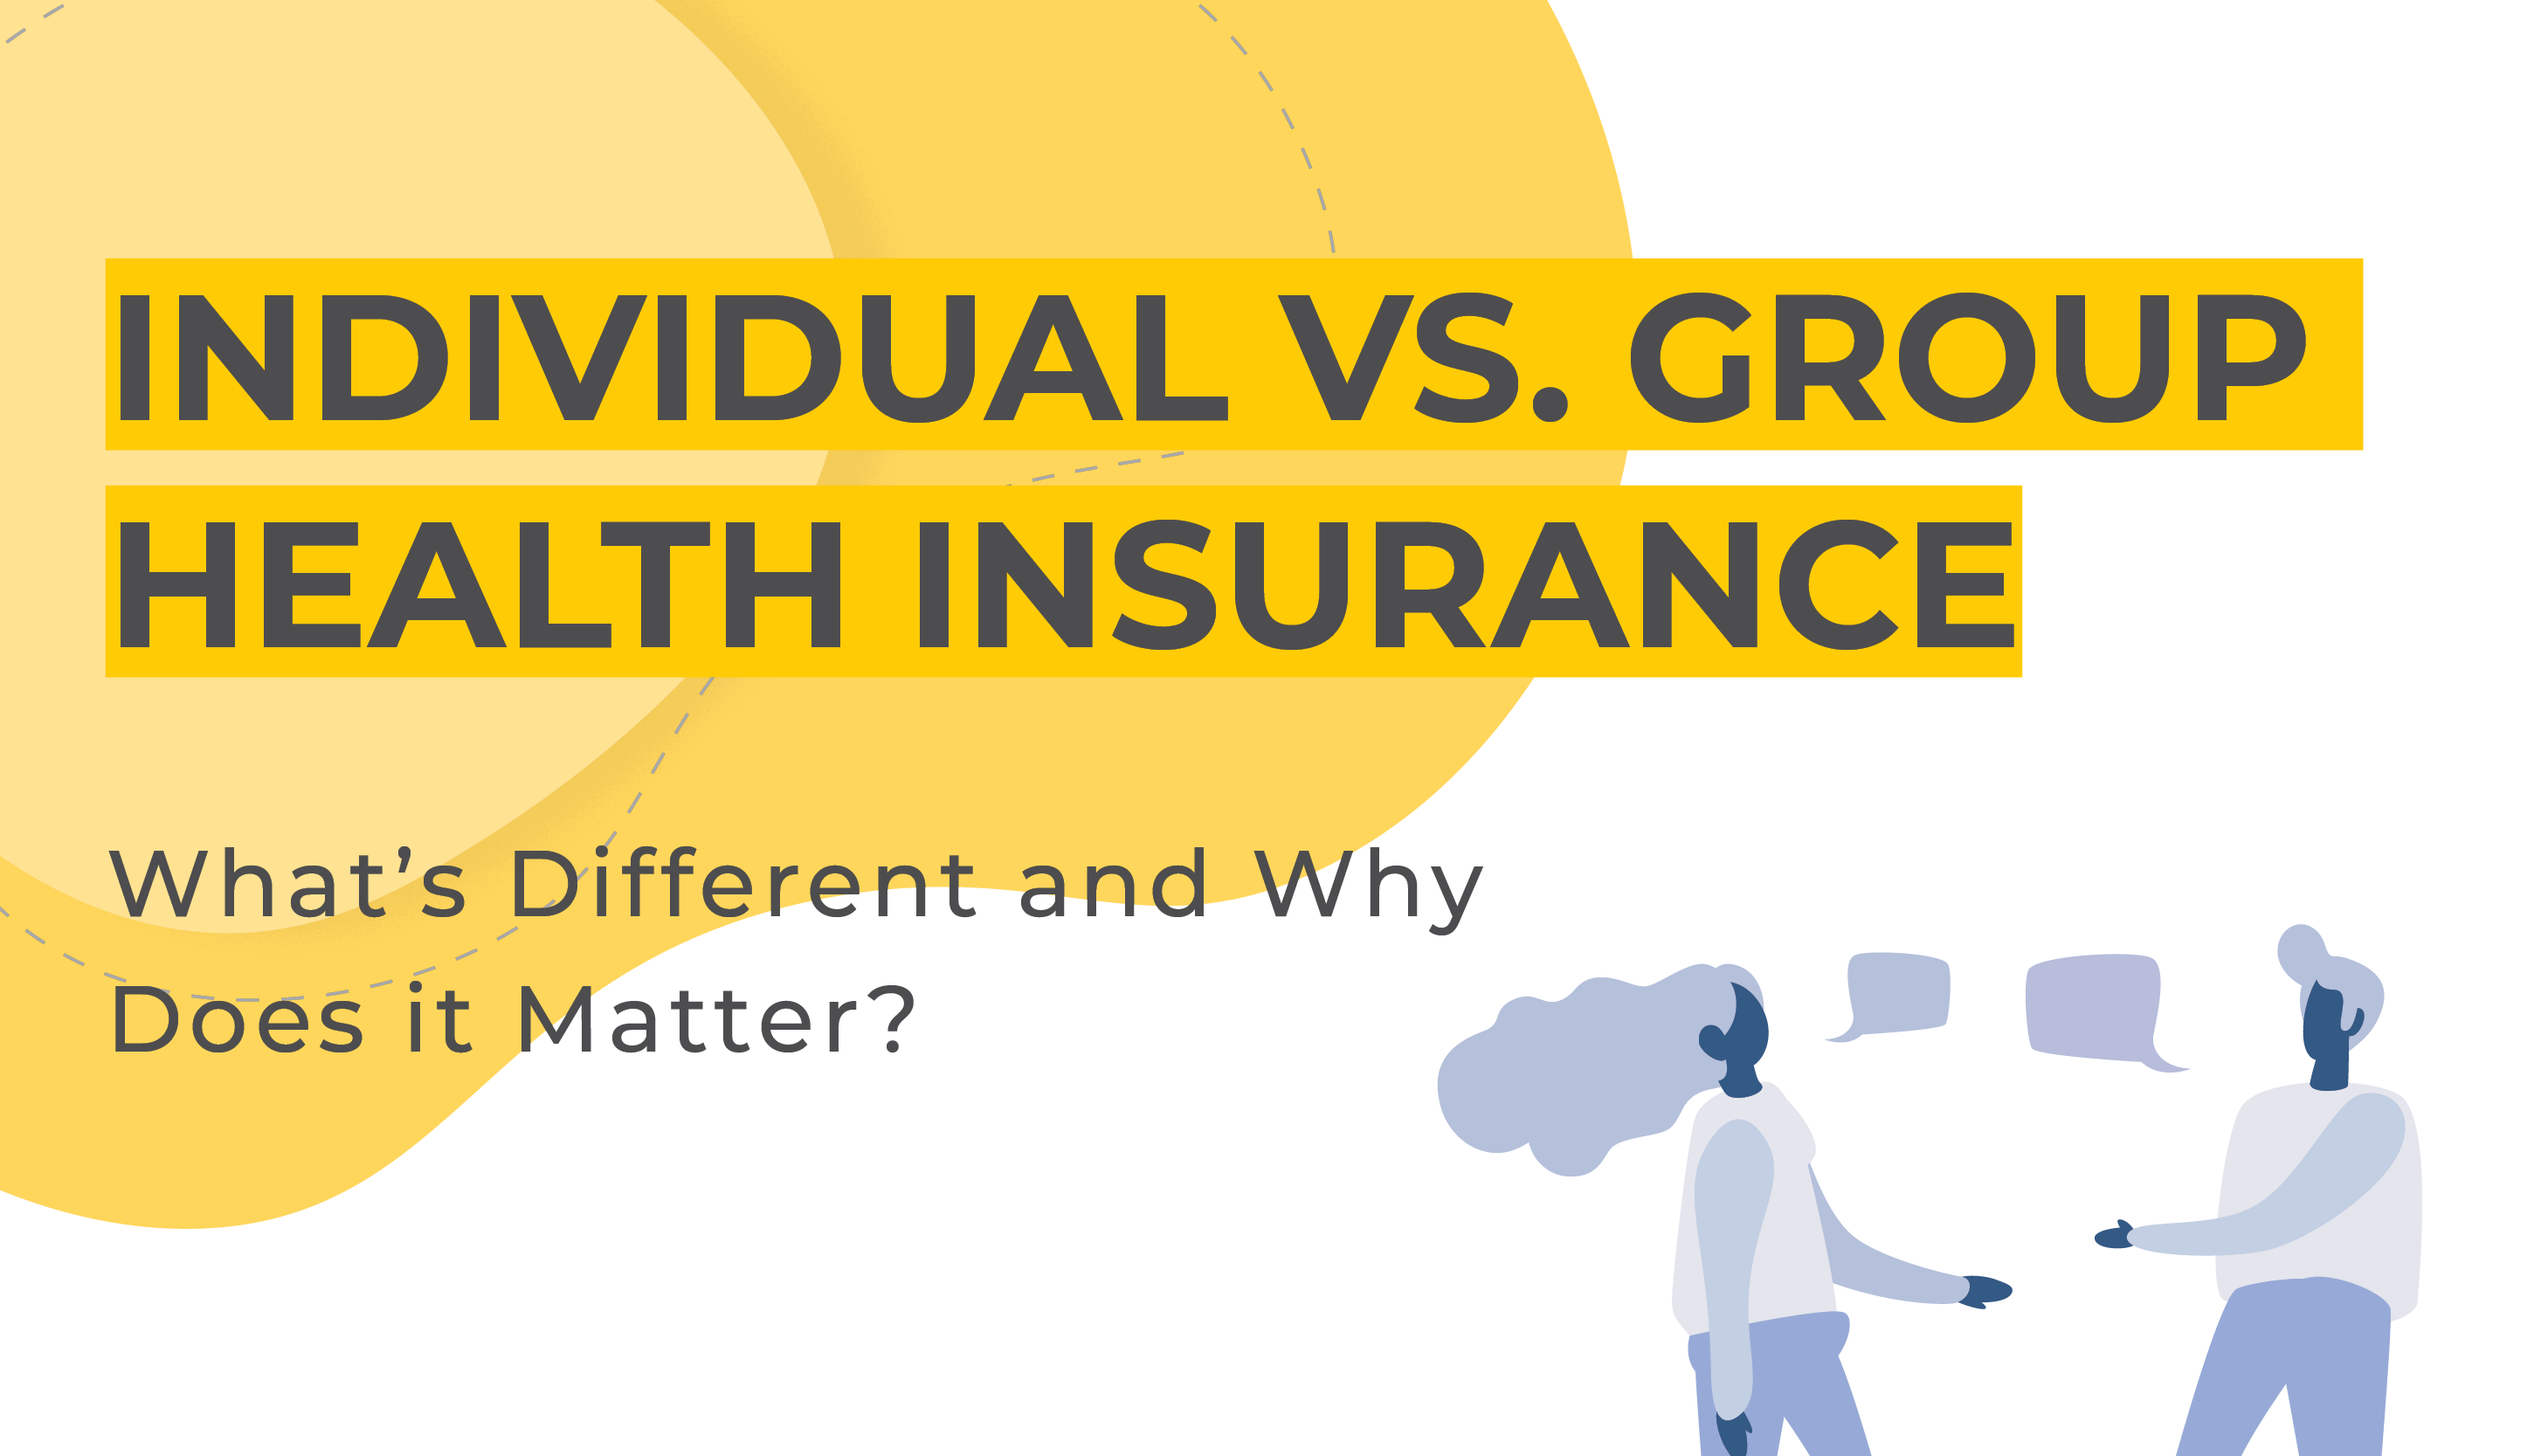 Individual vs. Group Health Insurance: What's Different and Why Does it Matter? | Benefits by Design